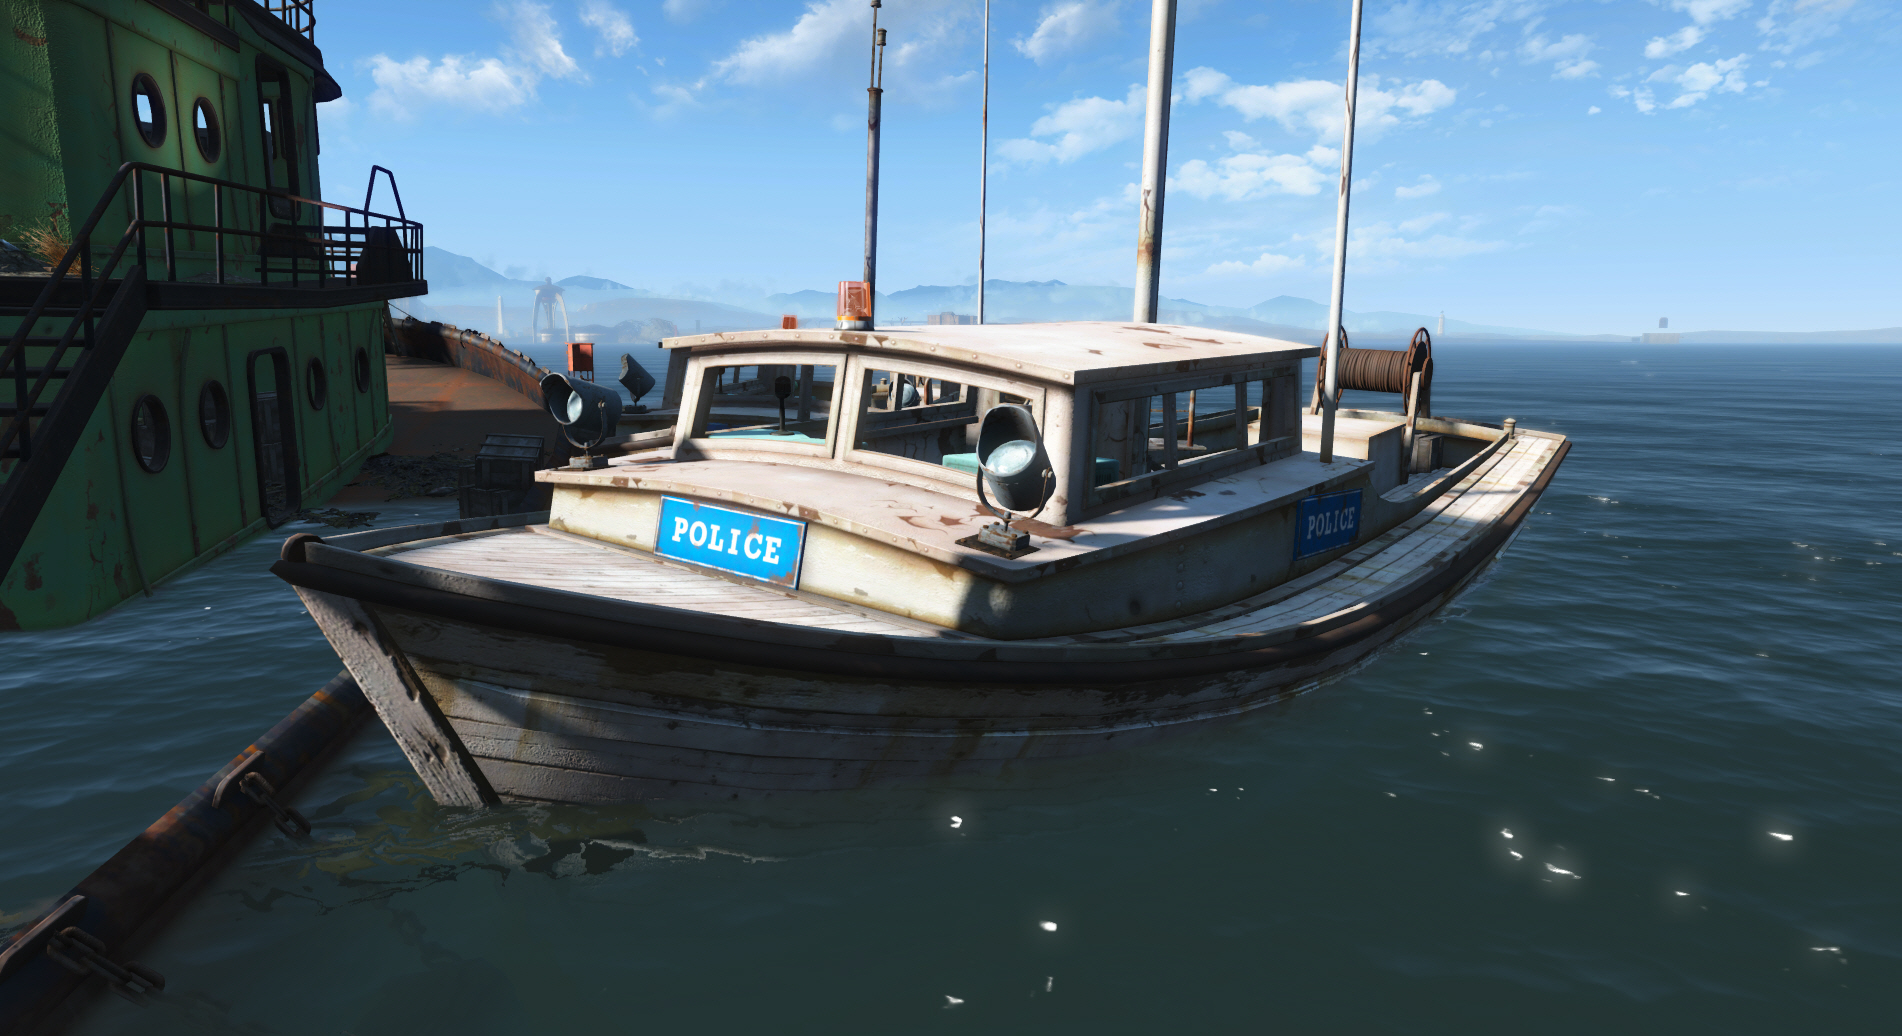 PoliceBoat-Fallout4